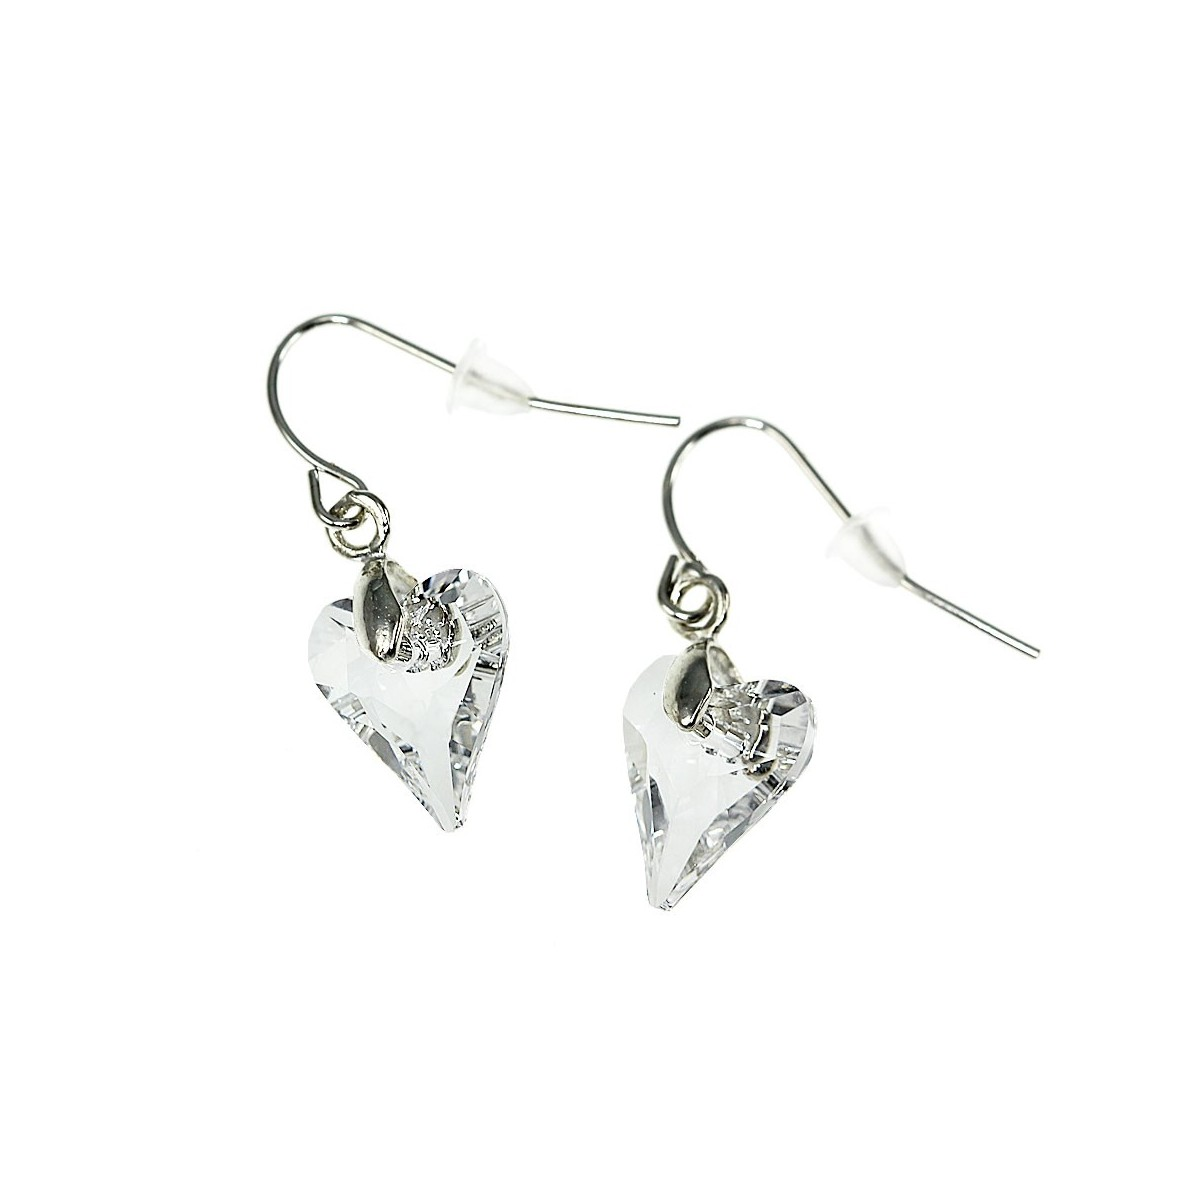 Boucles d'oreilles So Charm ornées d'un coeur blanc made with crystal from Swarovski